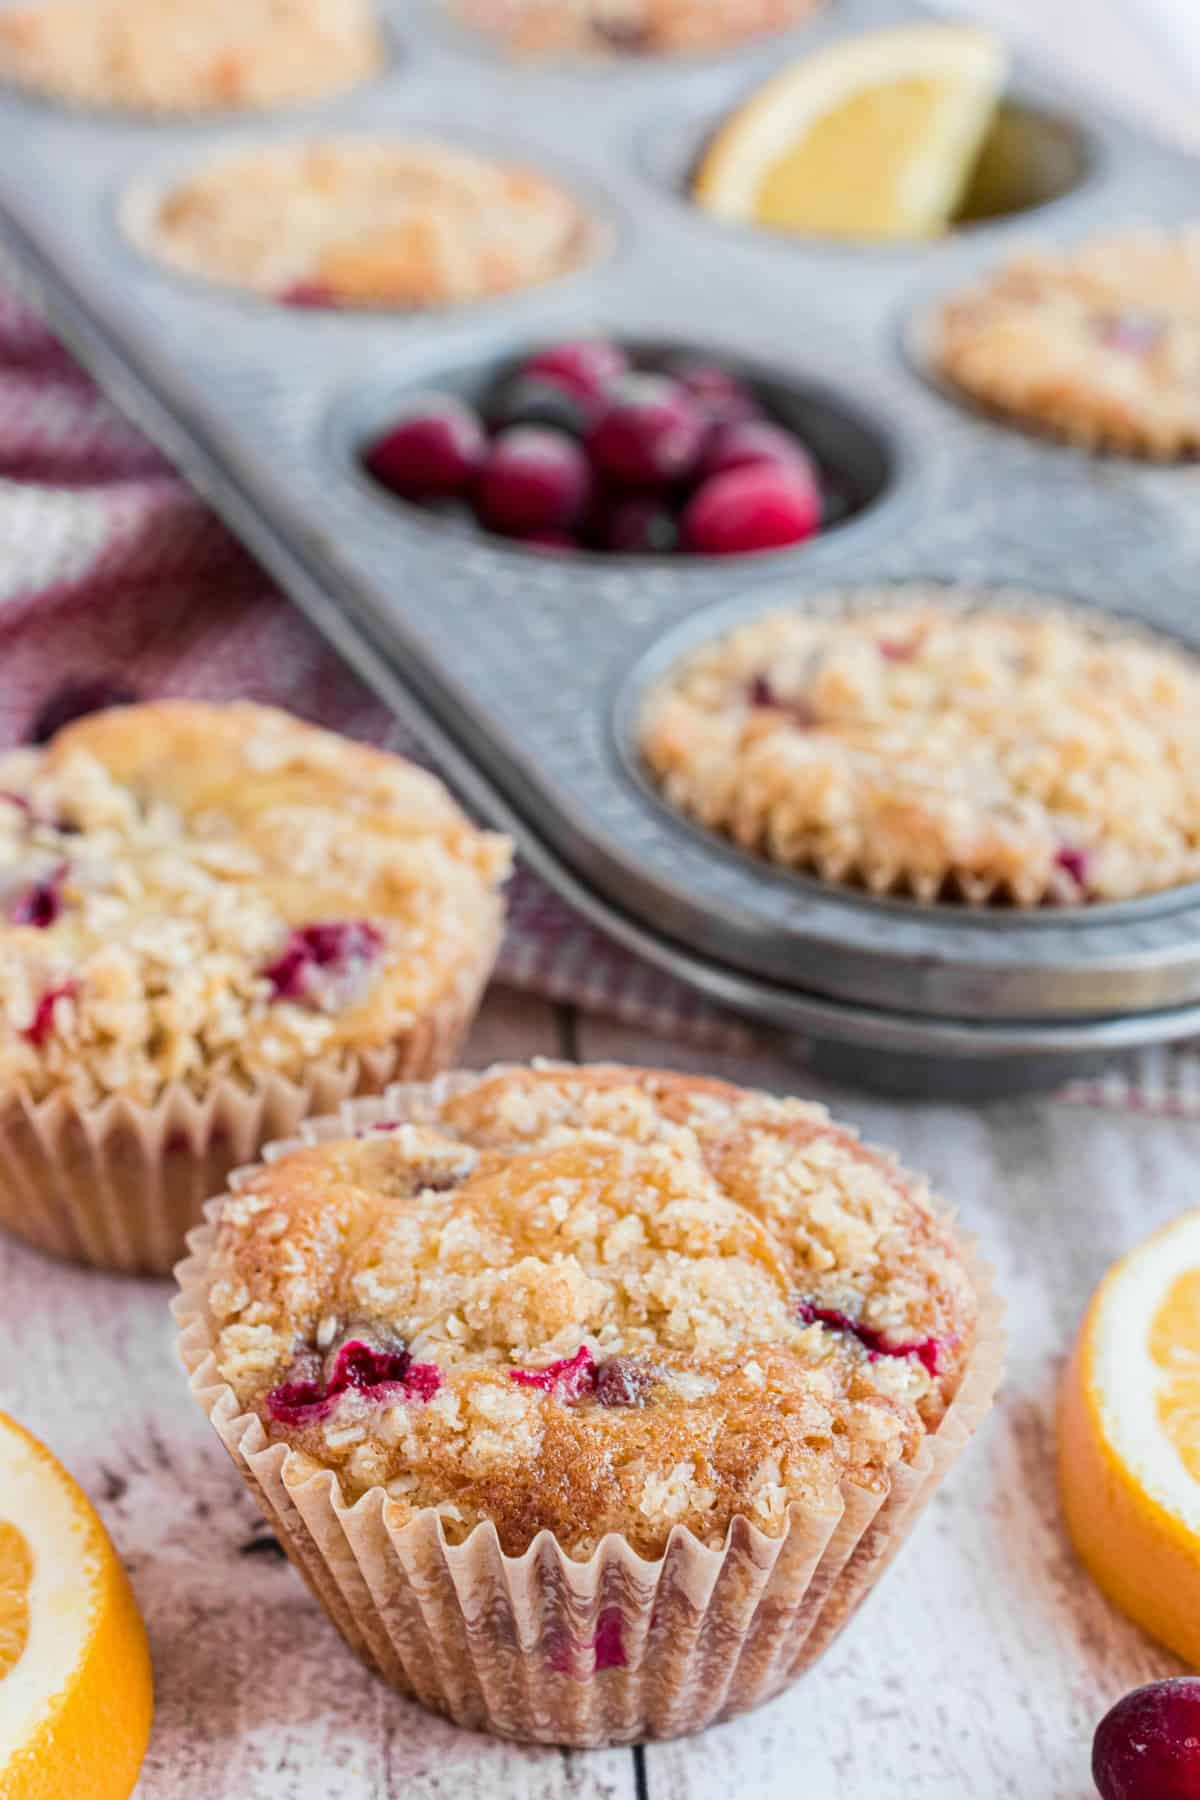 Cranberry orange muffins on counter with muffin pan in background.